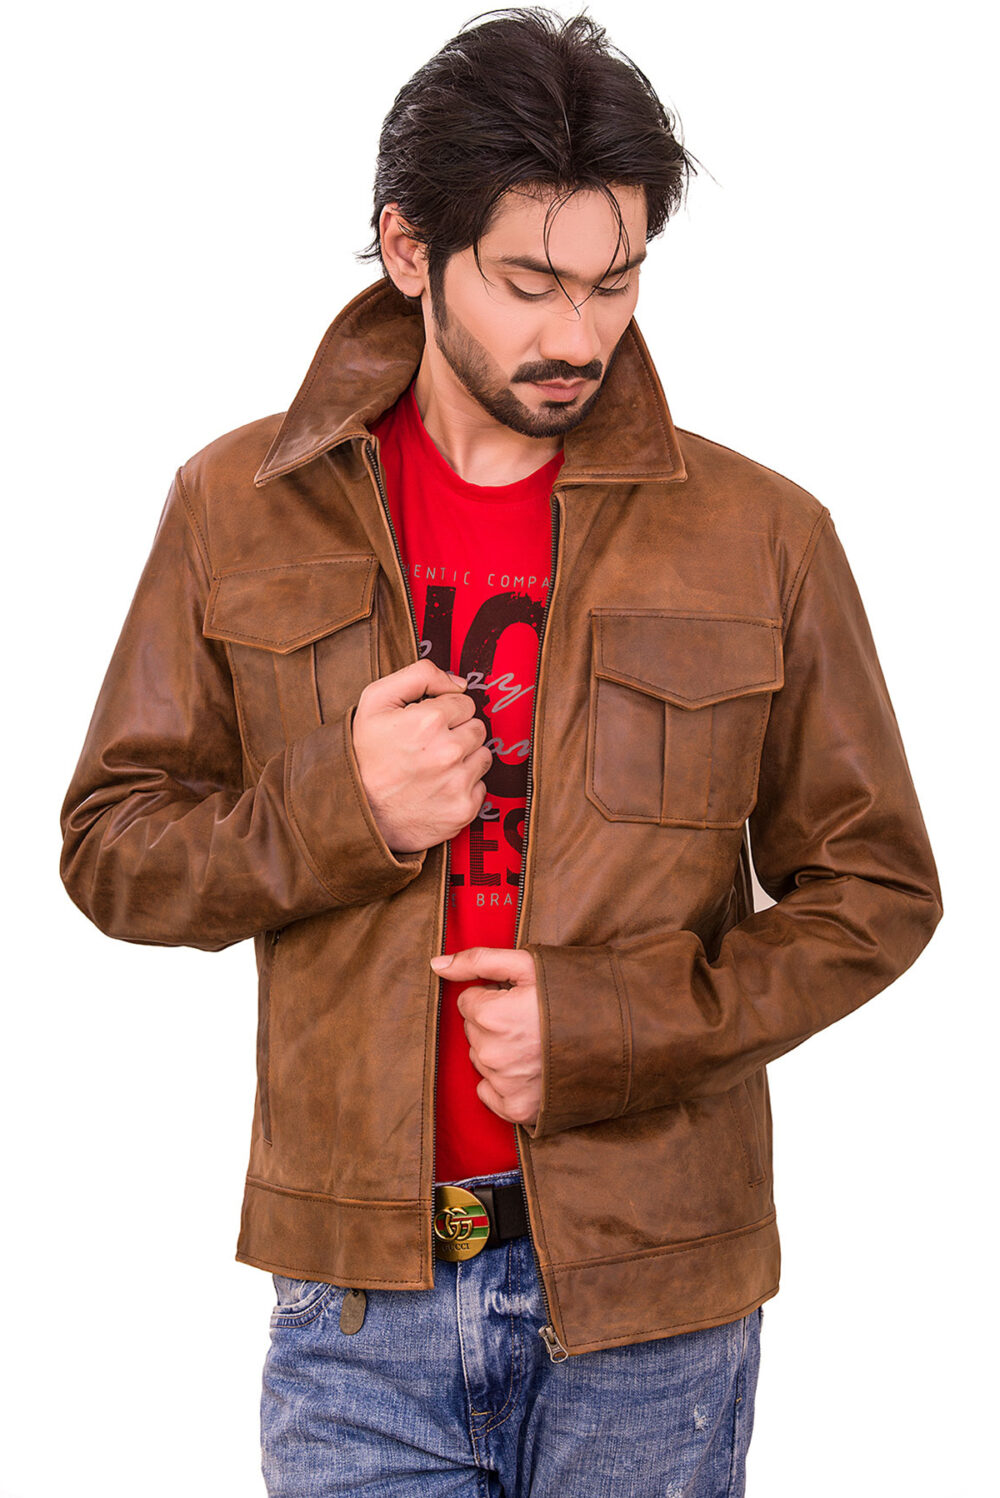 Parker Jens Distressed Brown Leather Jacket